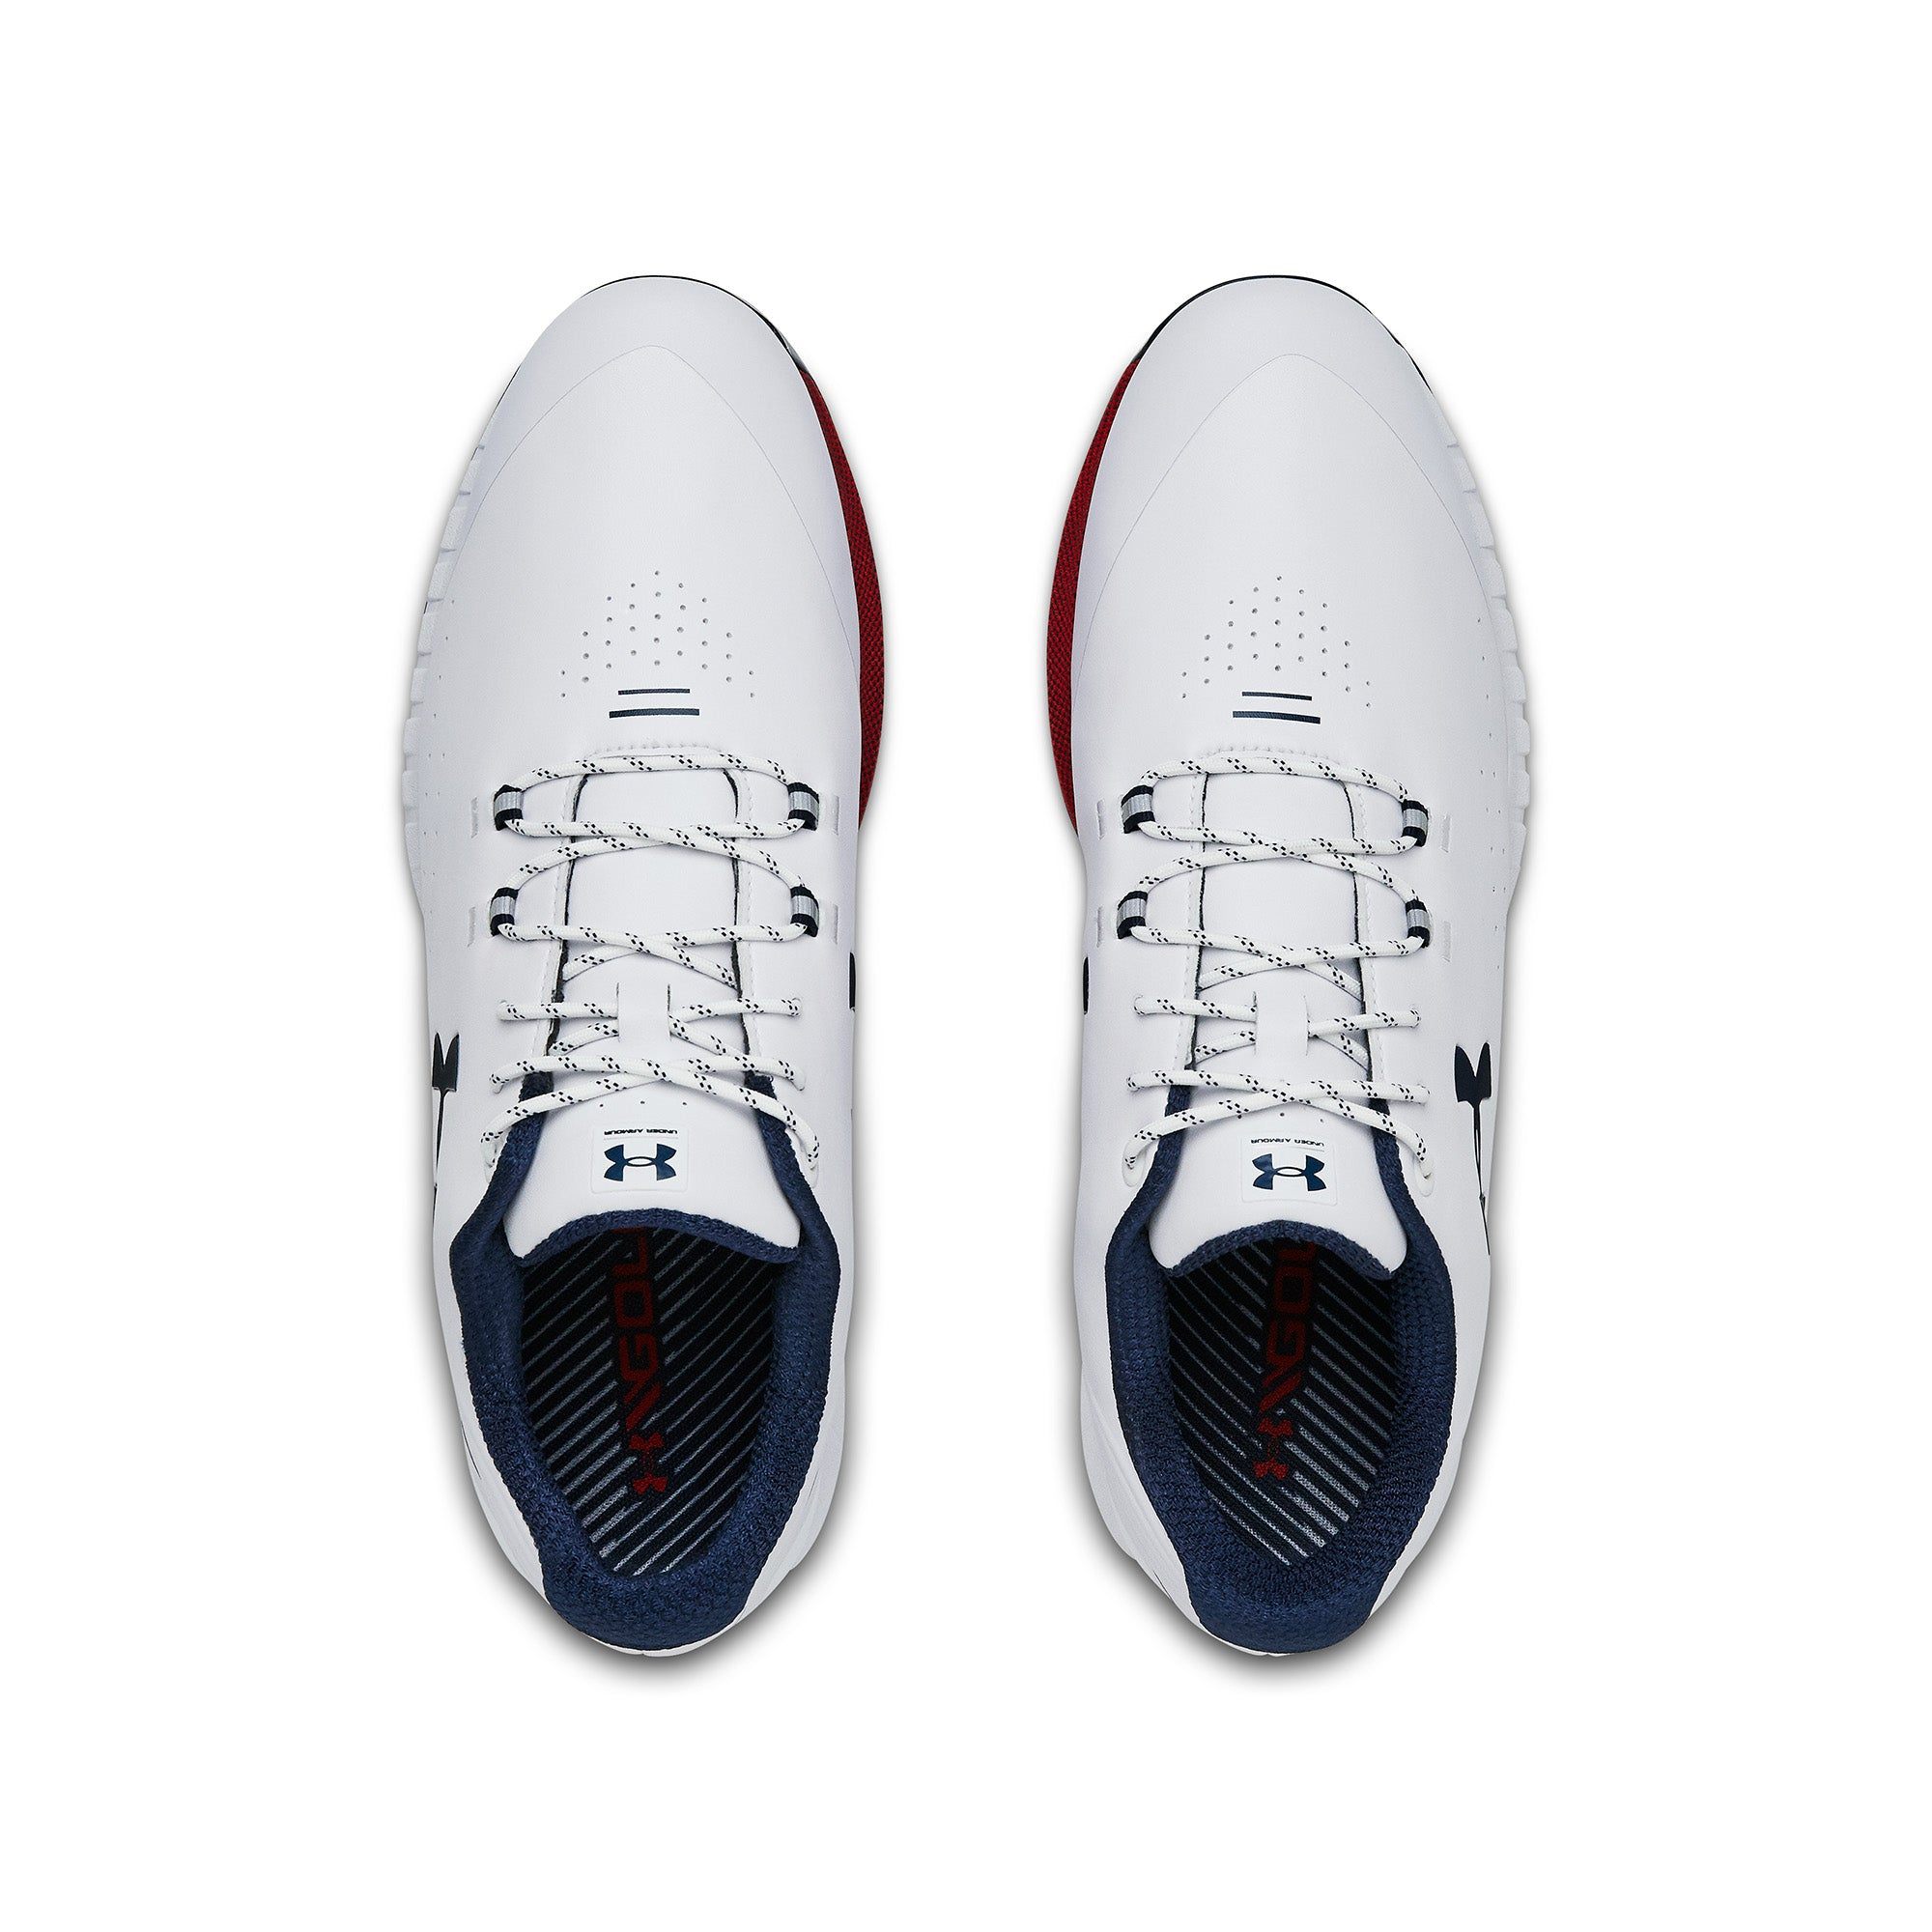 Under Armour HOVR Drive E Golf Shoes 3022294